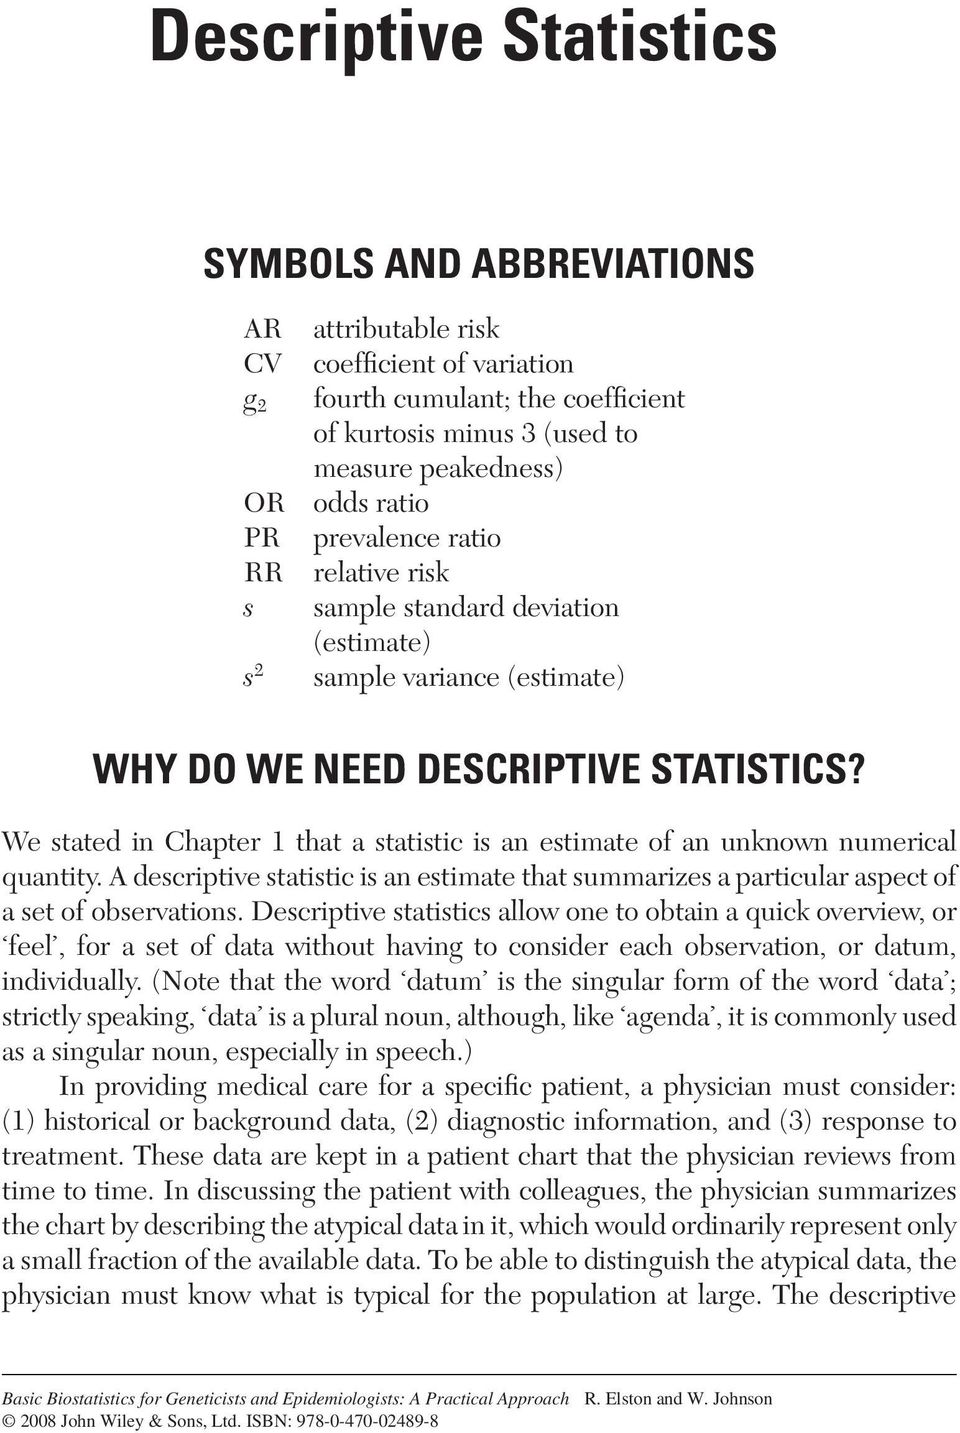 We stated in Chapter 1 that a statistic is an estimate of an unknown numerical quantity. A descriptive statistic is an estimate that summarizes a particular aspect of a set of observations.